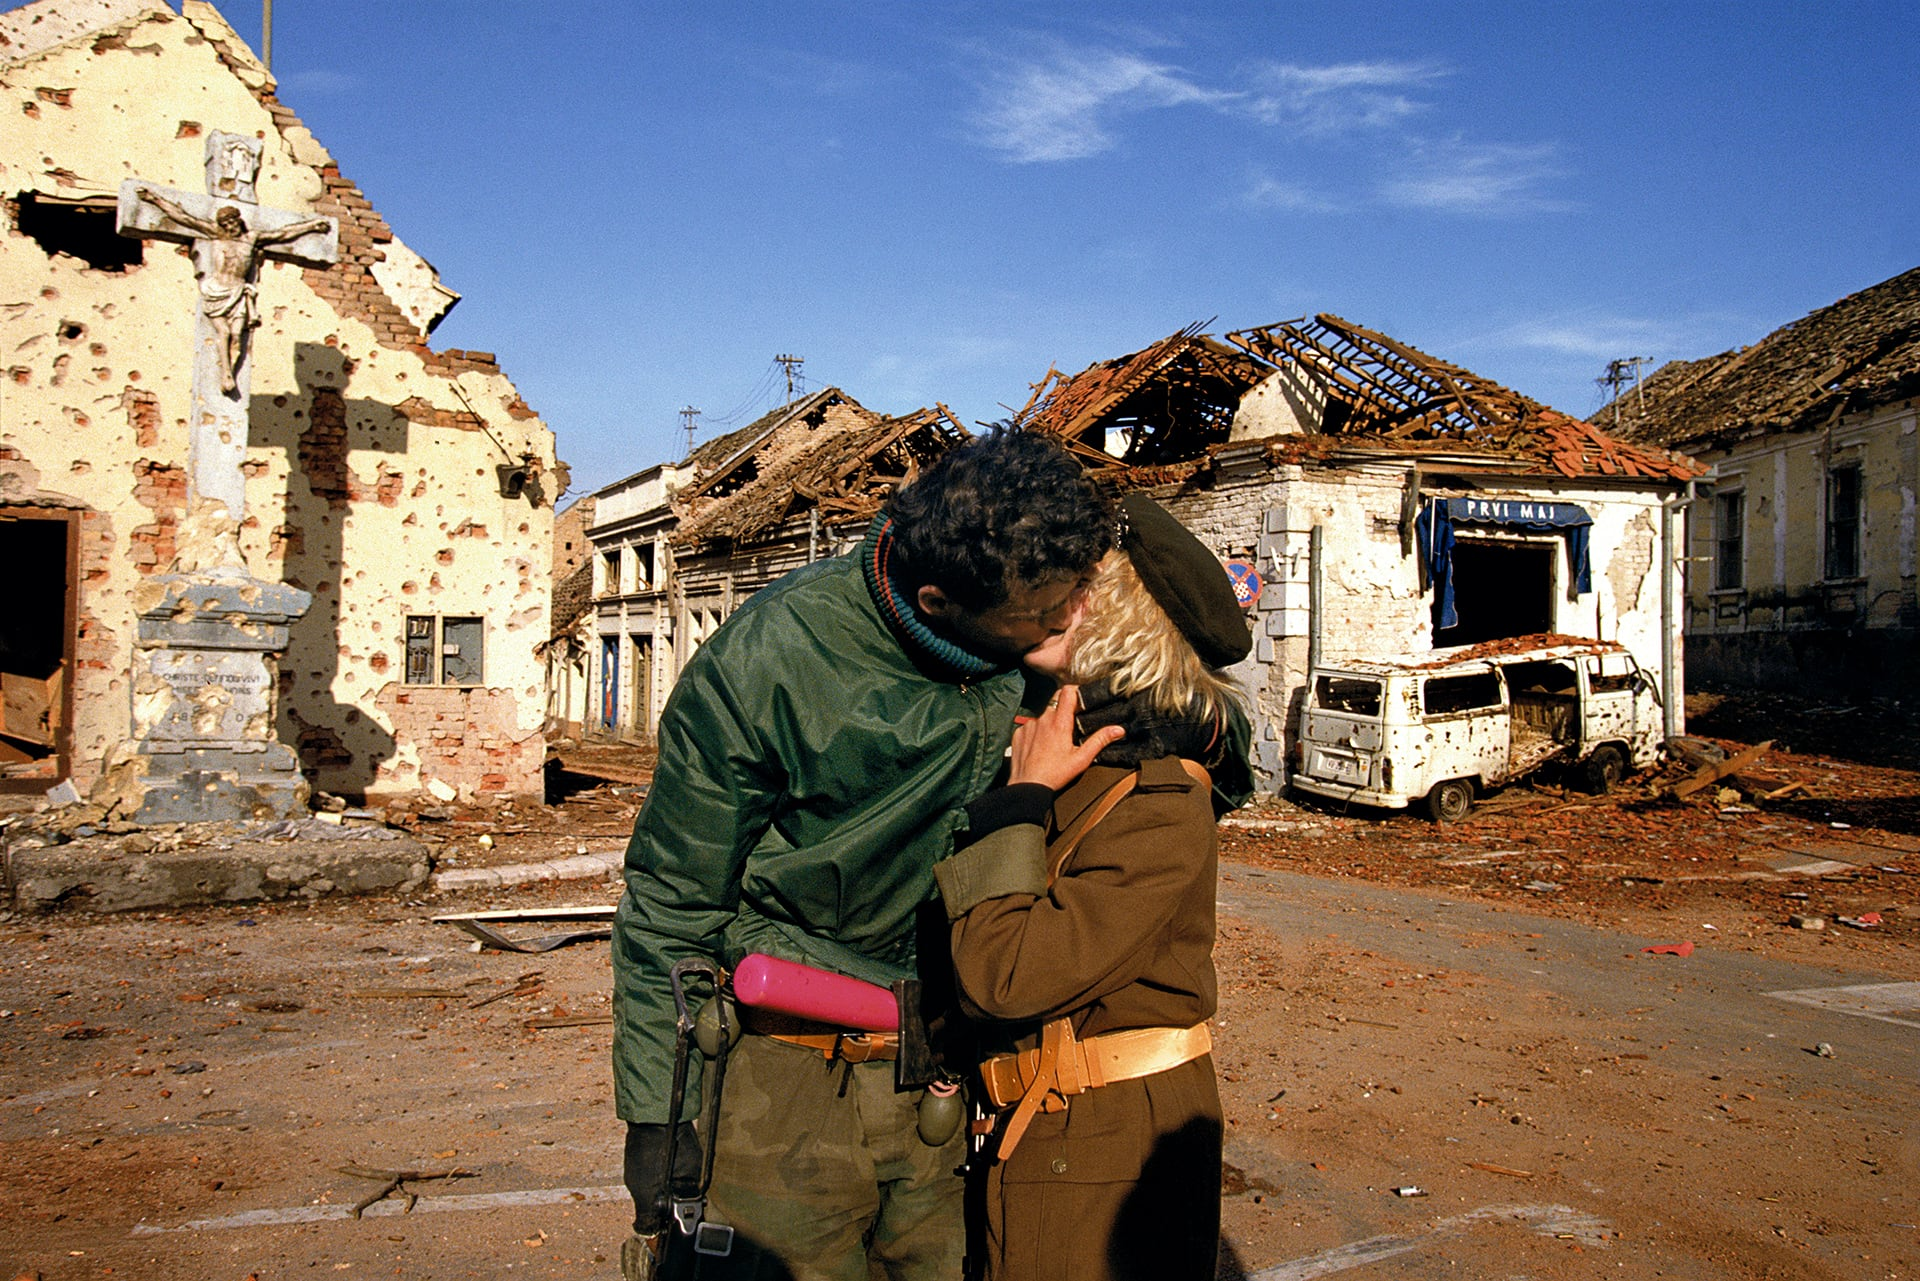 A Serbian couple kisses after the fall of Vukovar, Fall 1991. © Ron Haviv / VII